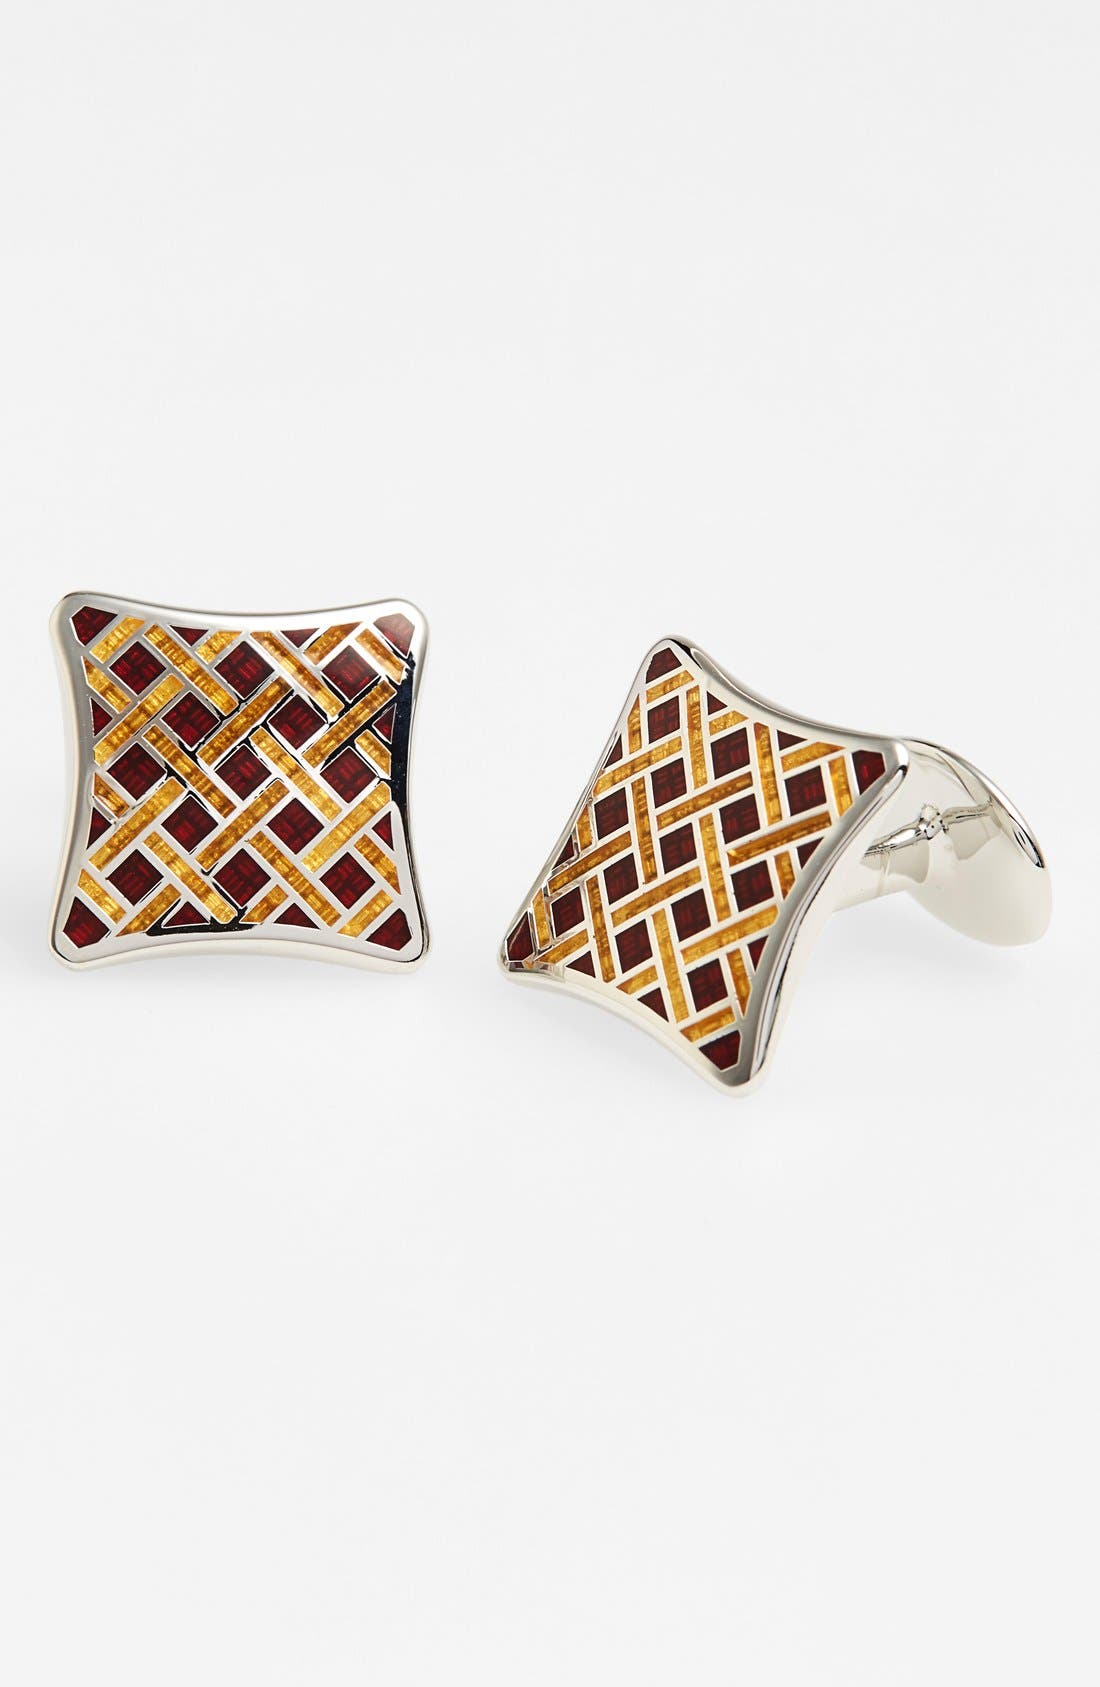 Basketweave Cuff Links,                         Main,                         color, Silver/ Wine/ Gold